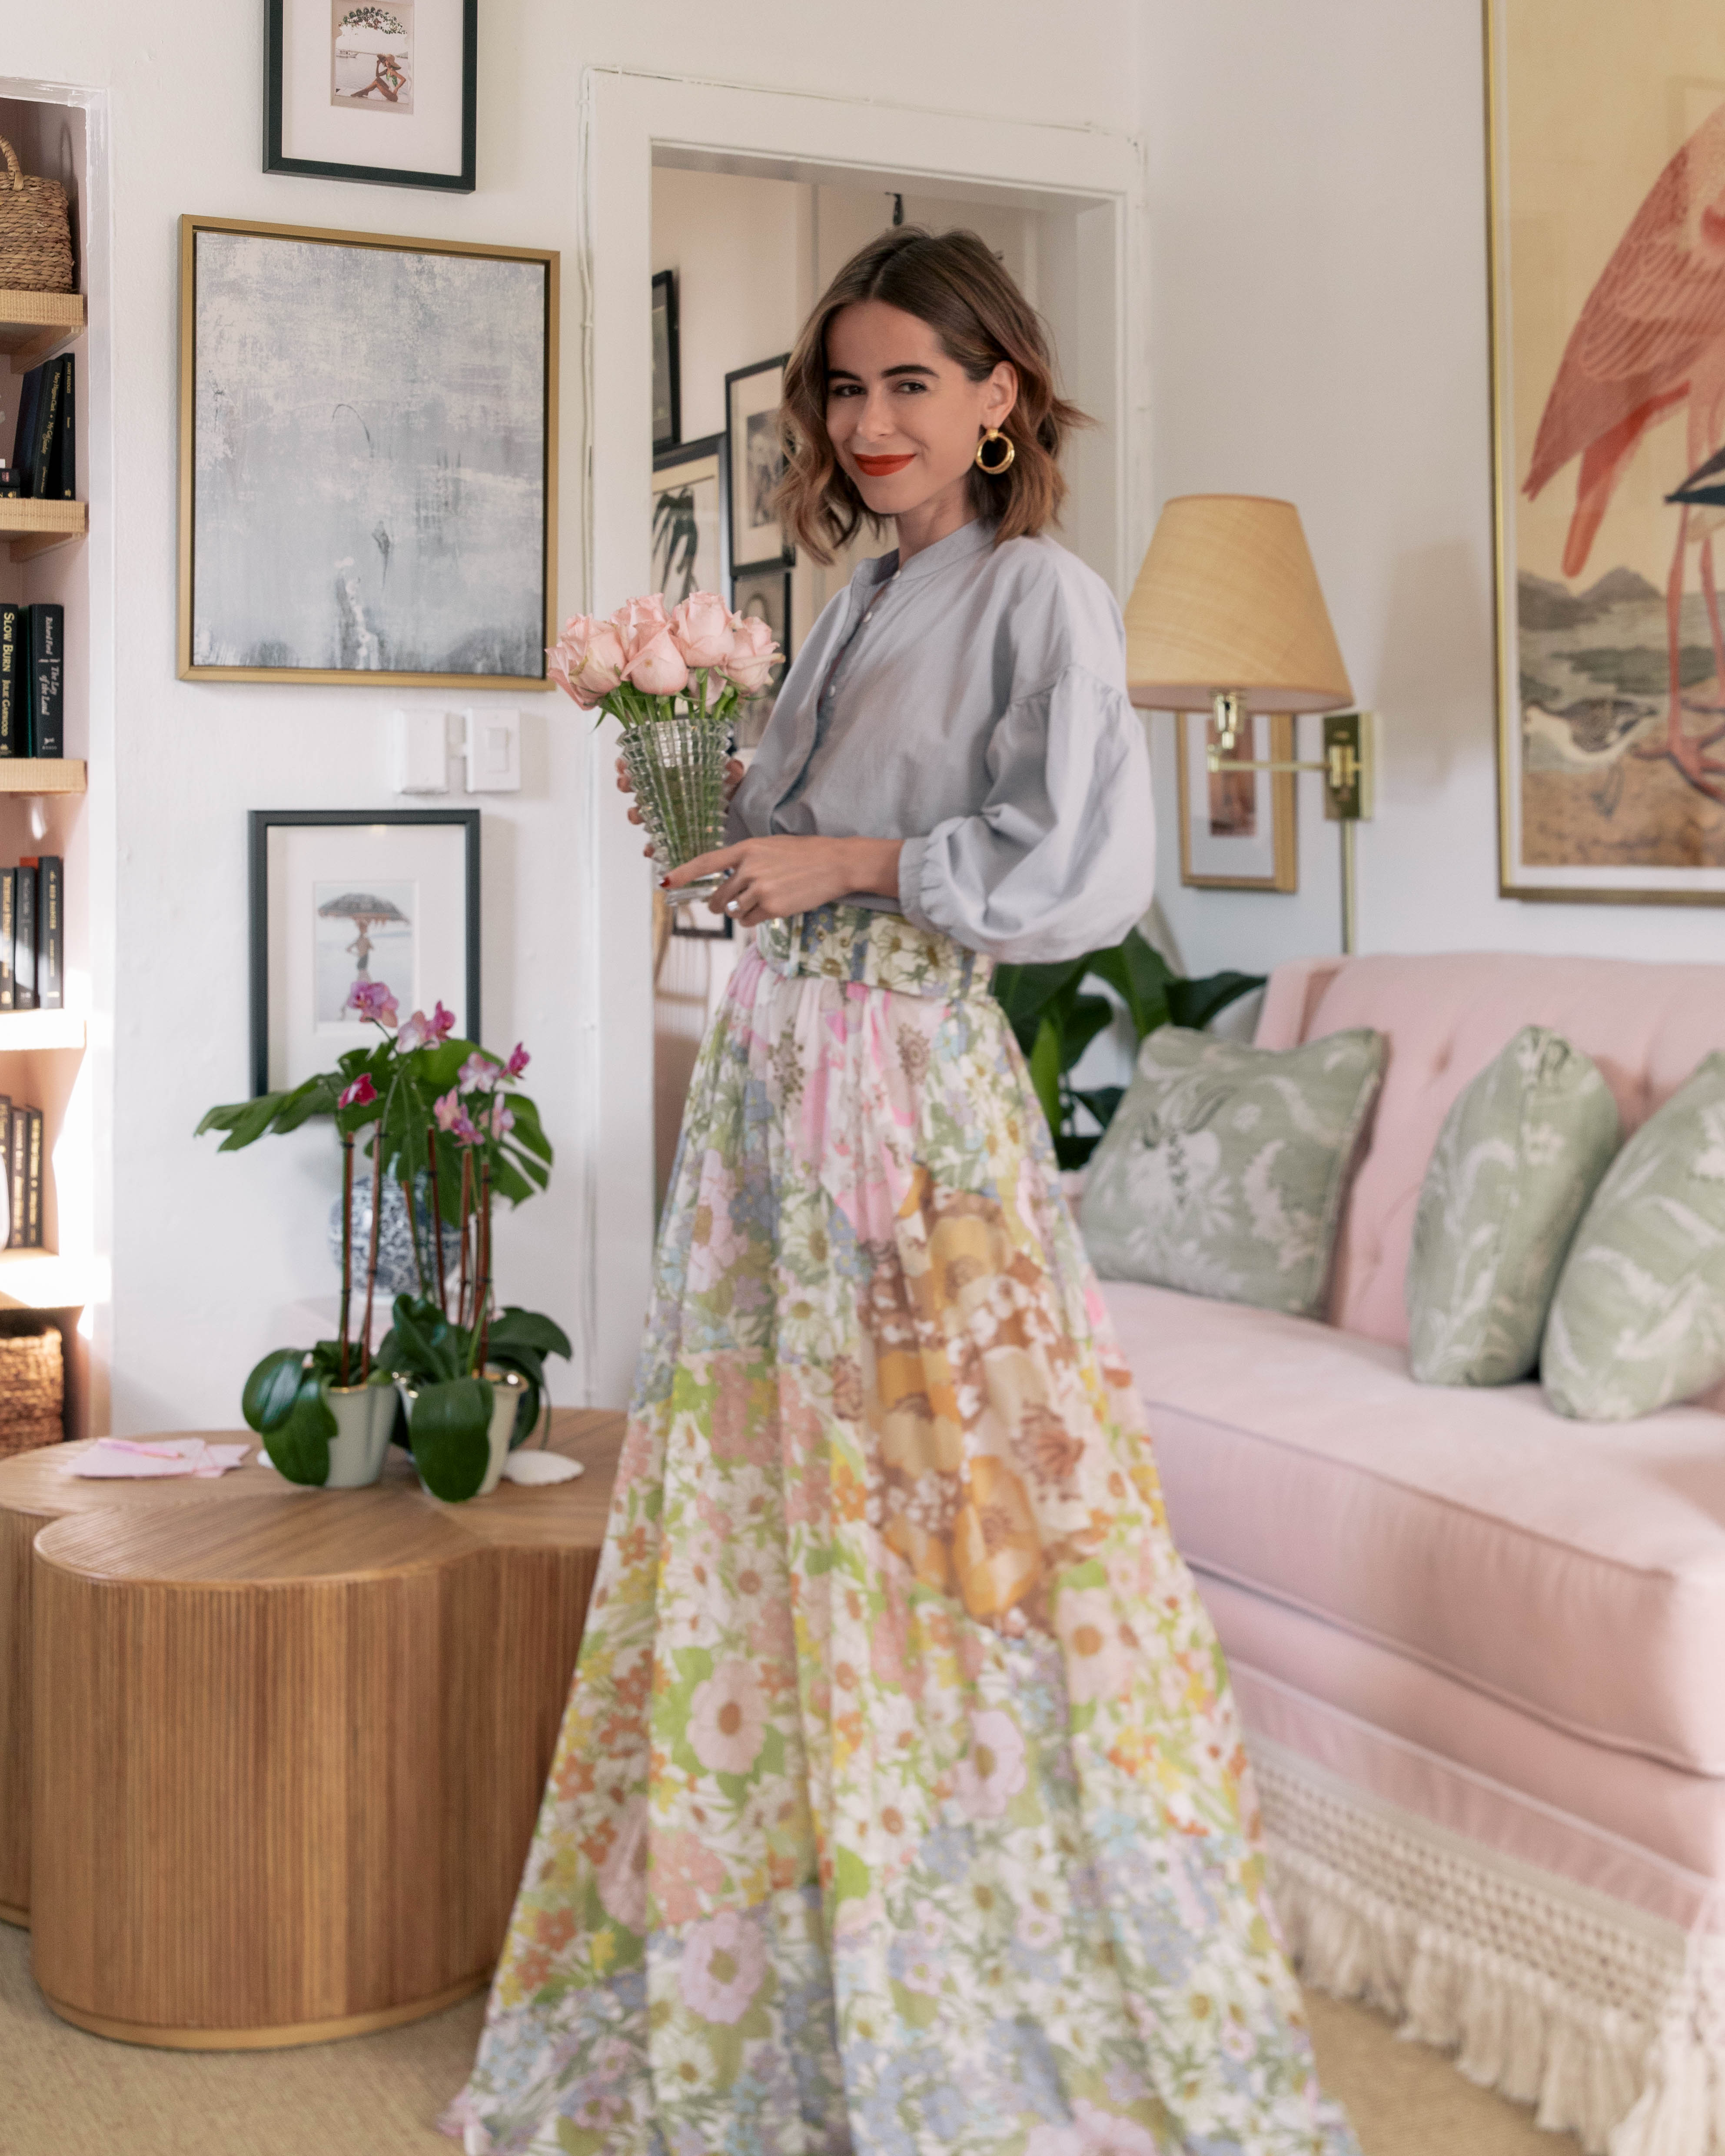 Fashion Blogger Stephanie Hill shares Small Spaces, Big Ideas with Roxy Te on The Style Bungalow